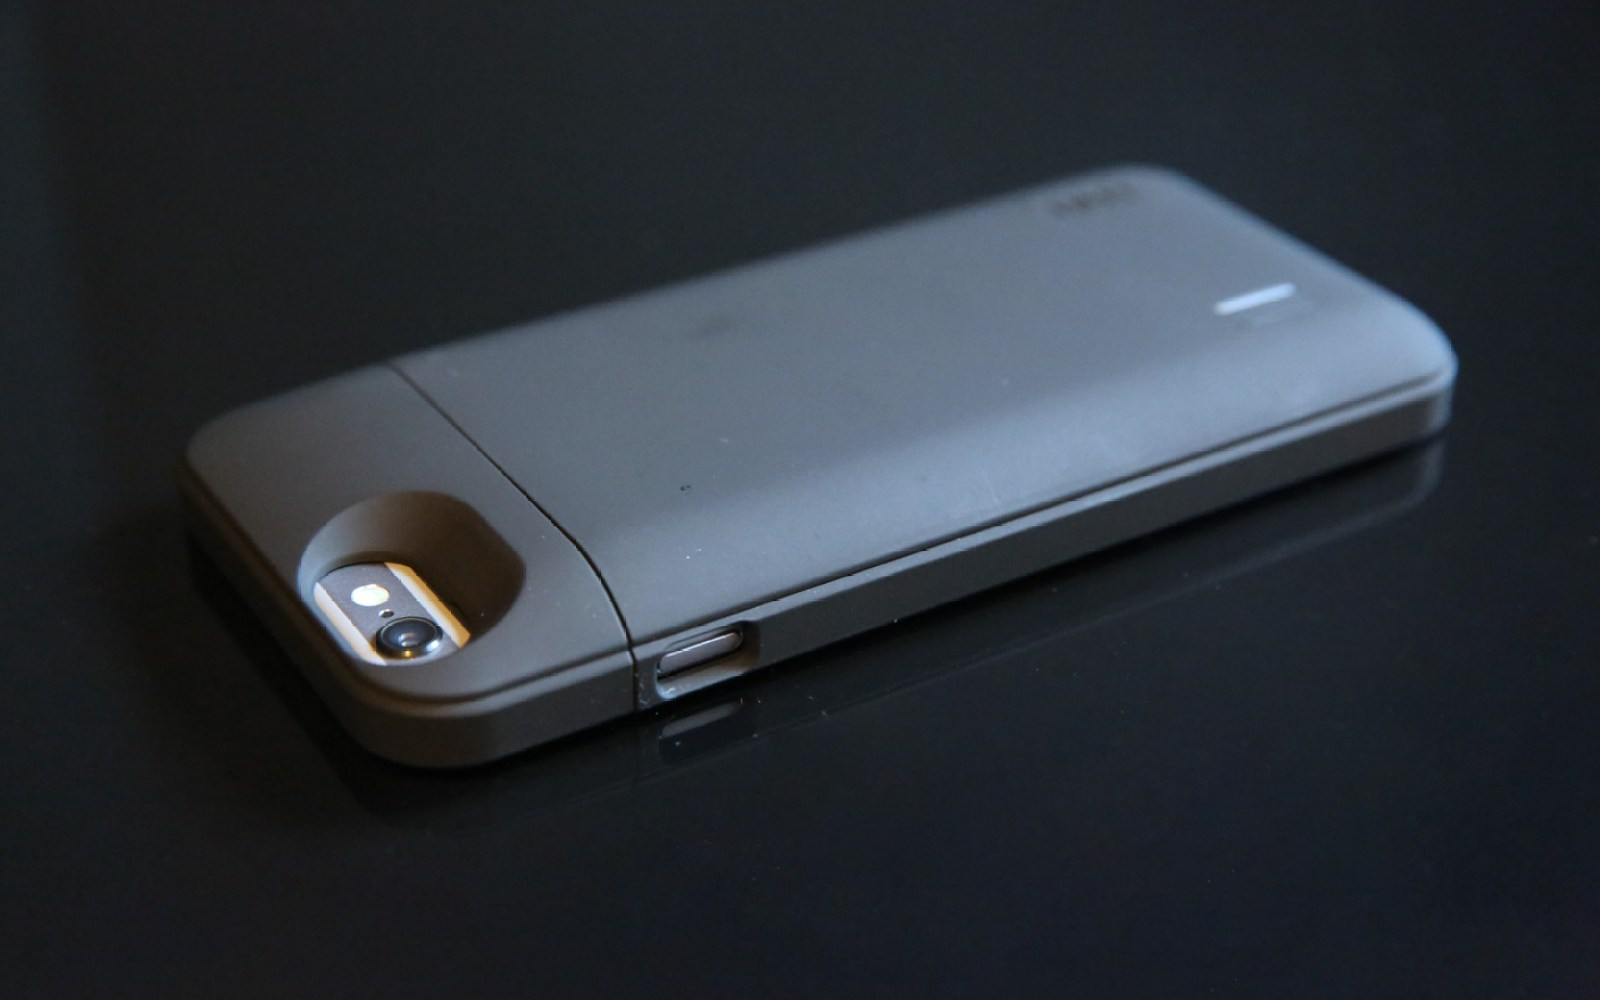 Review: uNu's DX-6 battery case more than doubles the iPhone 6's power, with Apple certification (Video)